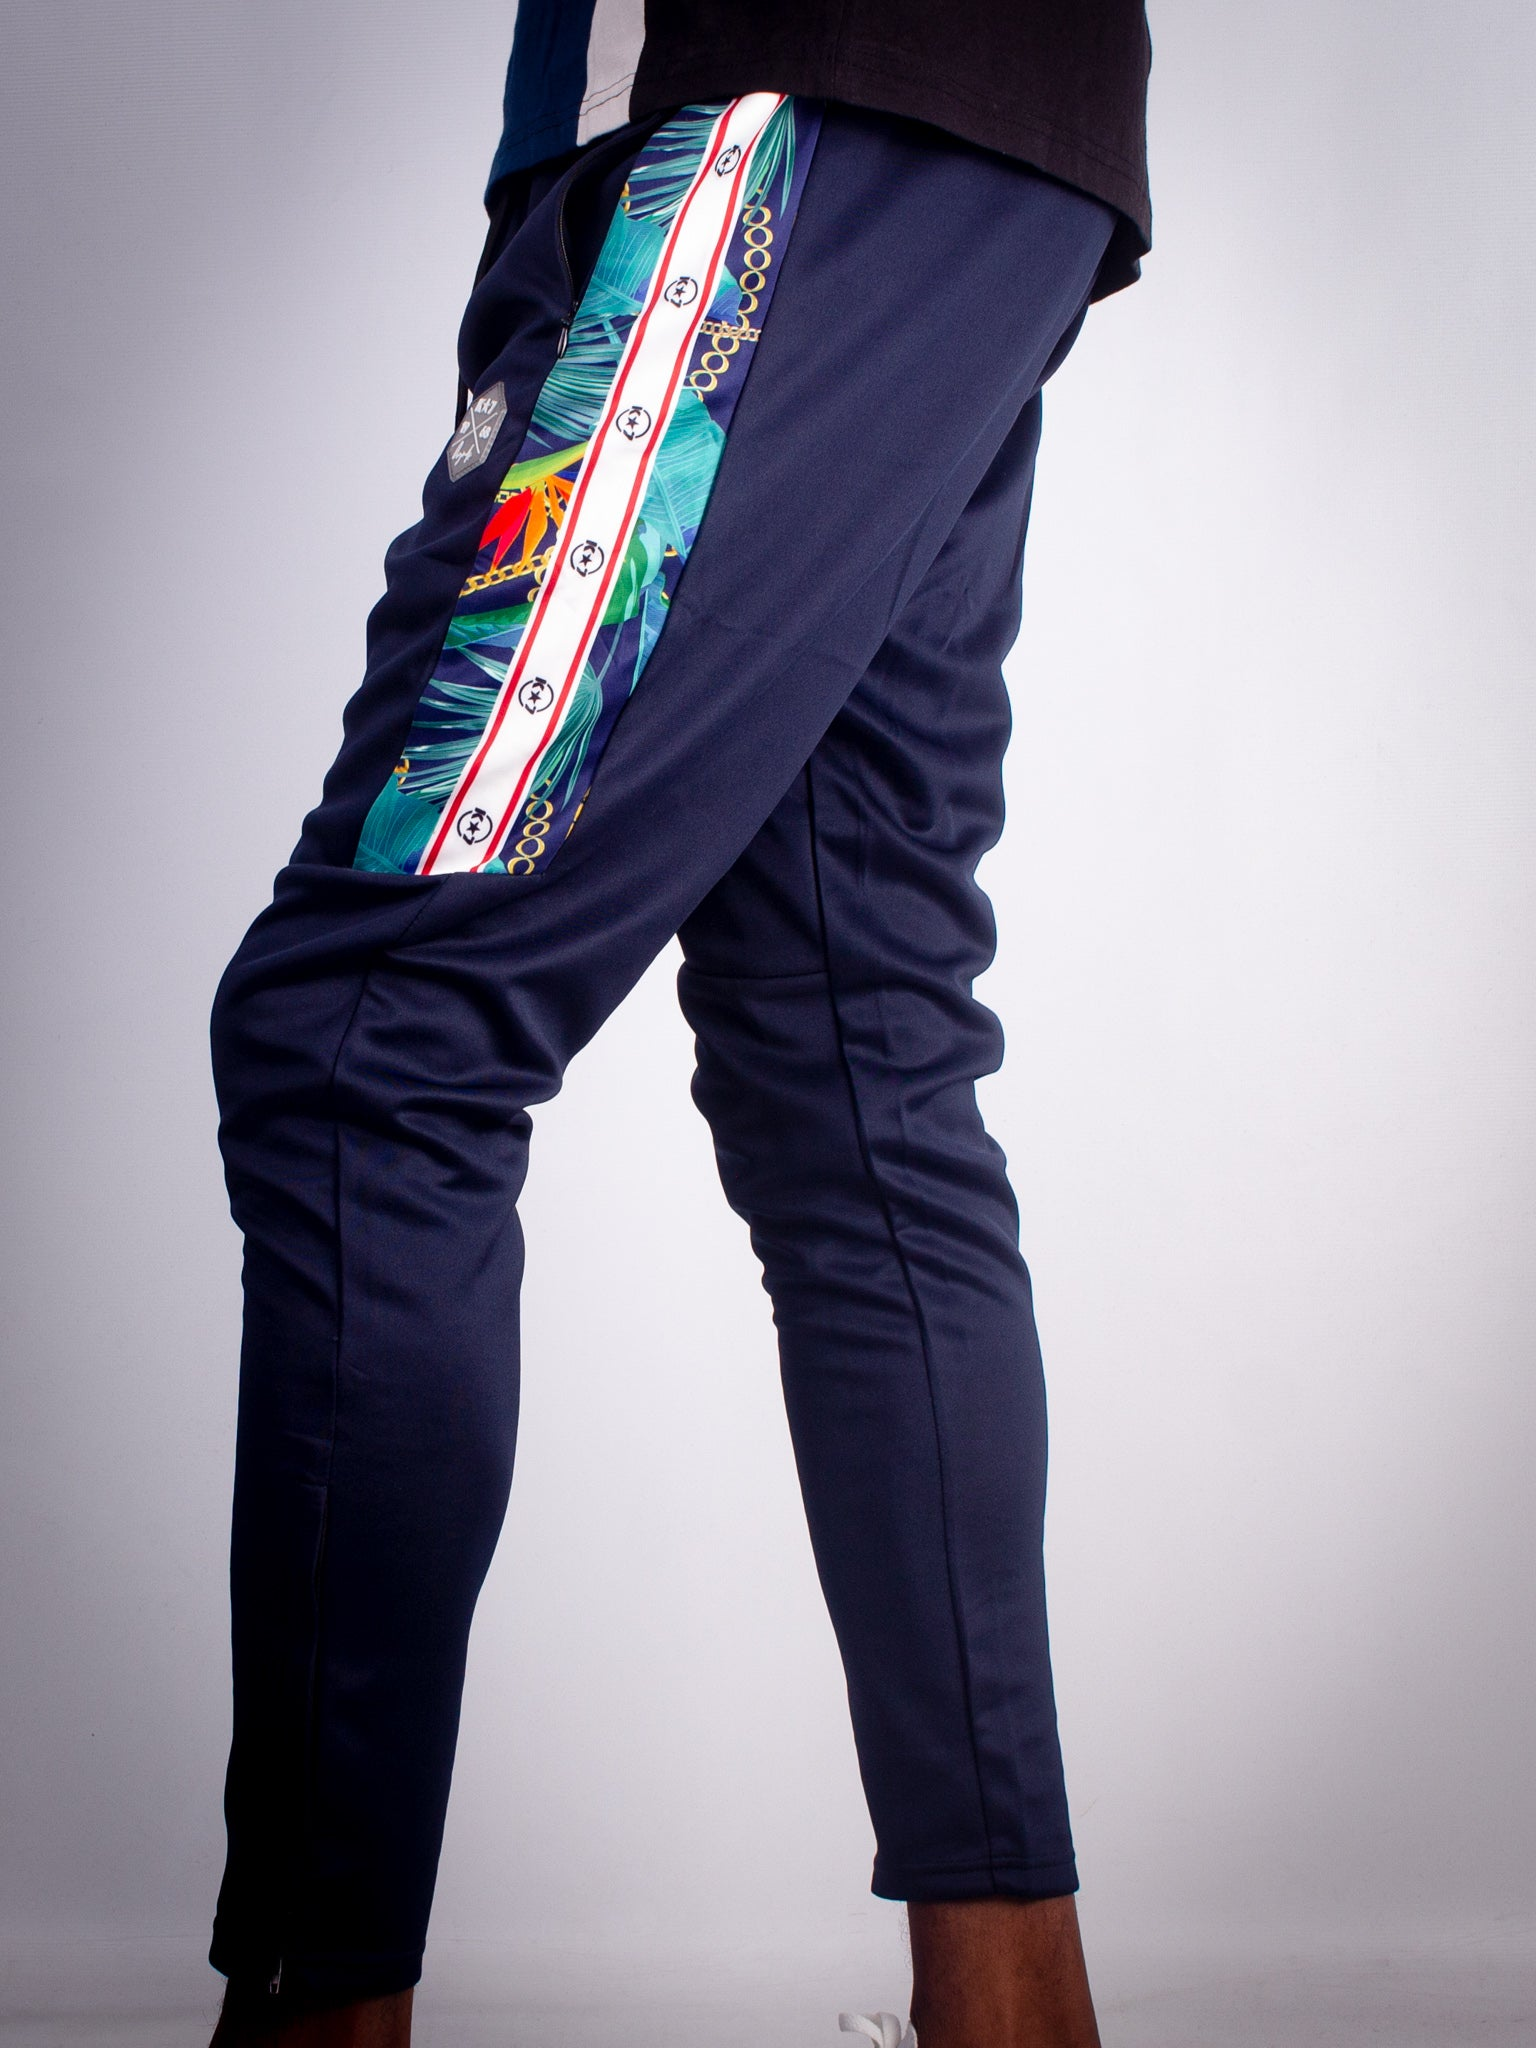 Greece Trackpants